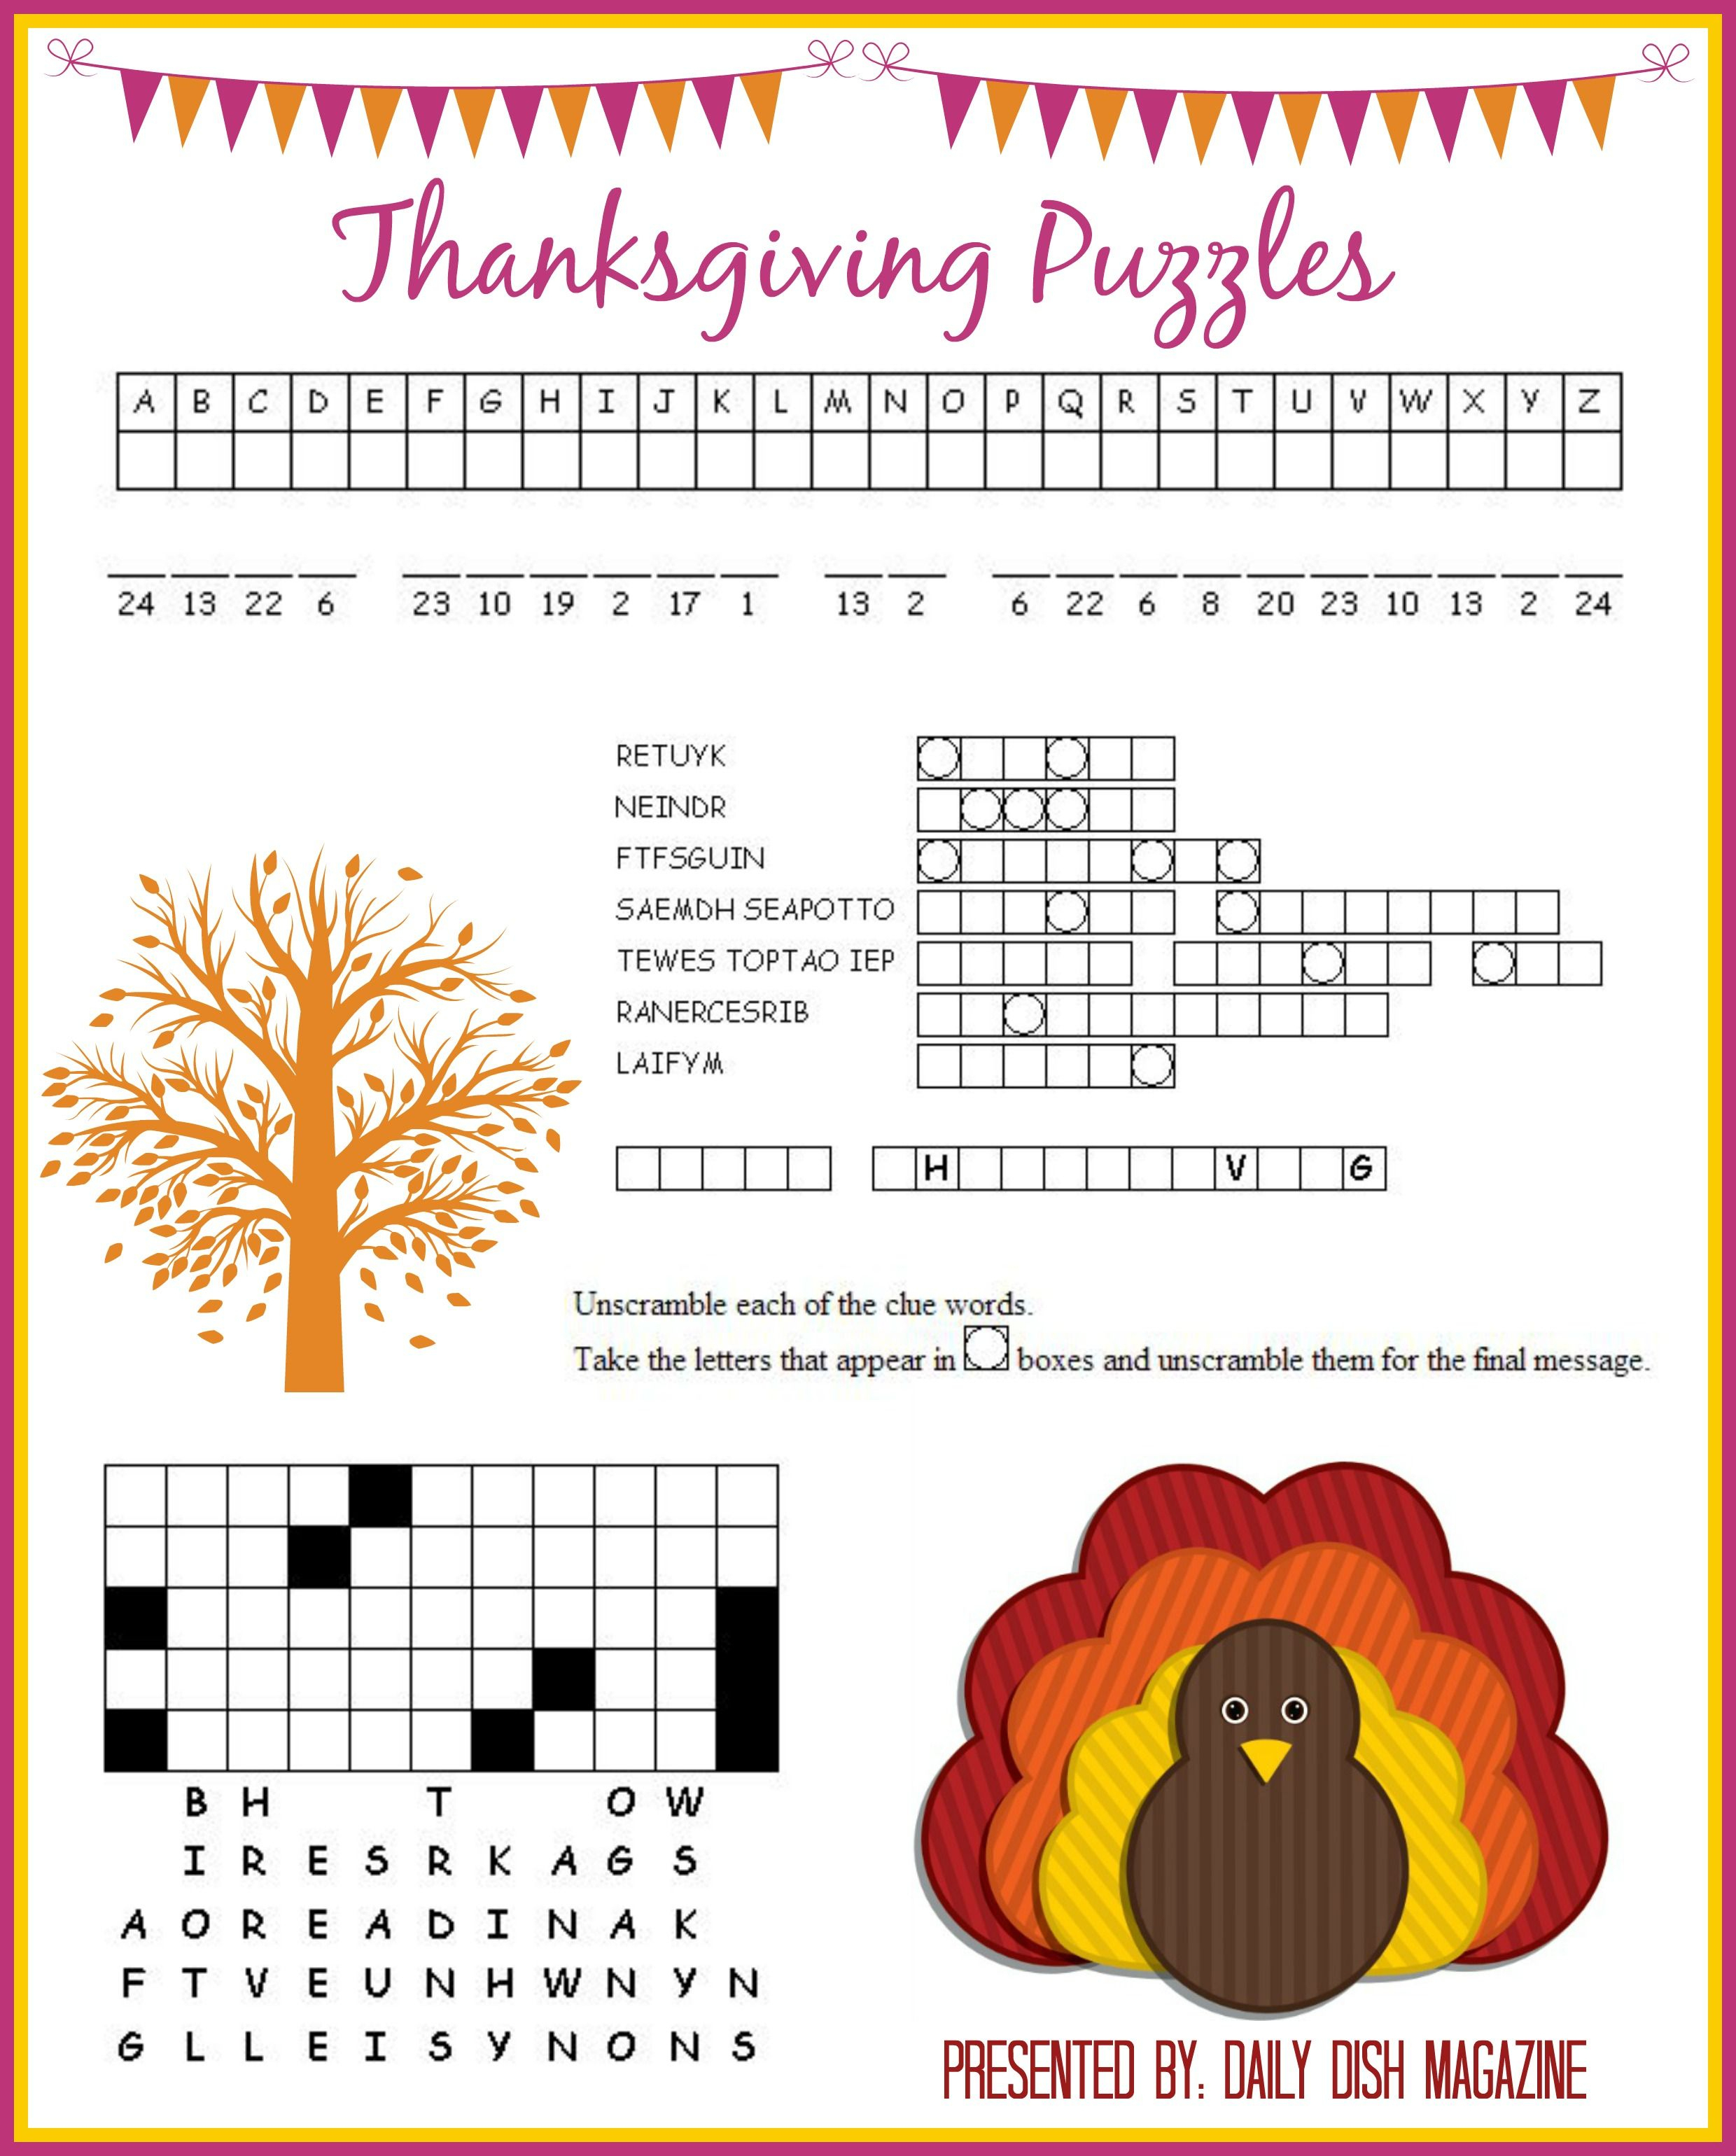 Thanksgiving Puzzles Printables | *holidays We Celebrate - Thanksgiving Crossword Puzzle Printable